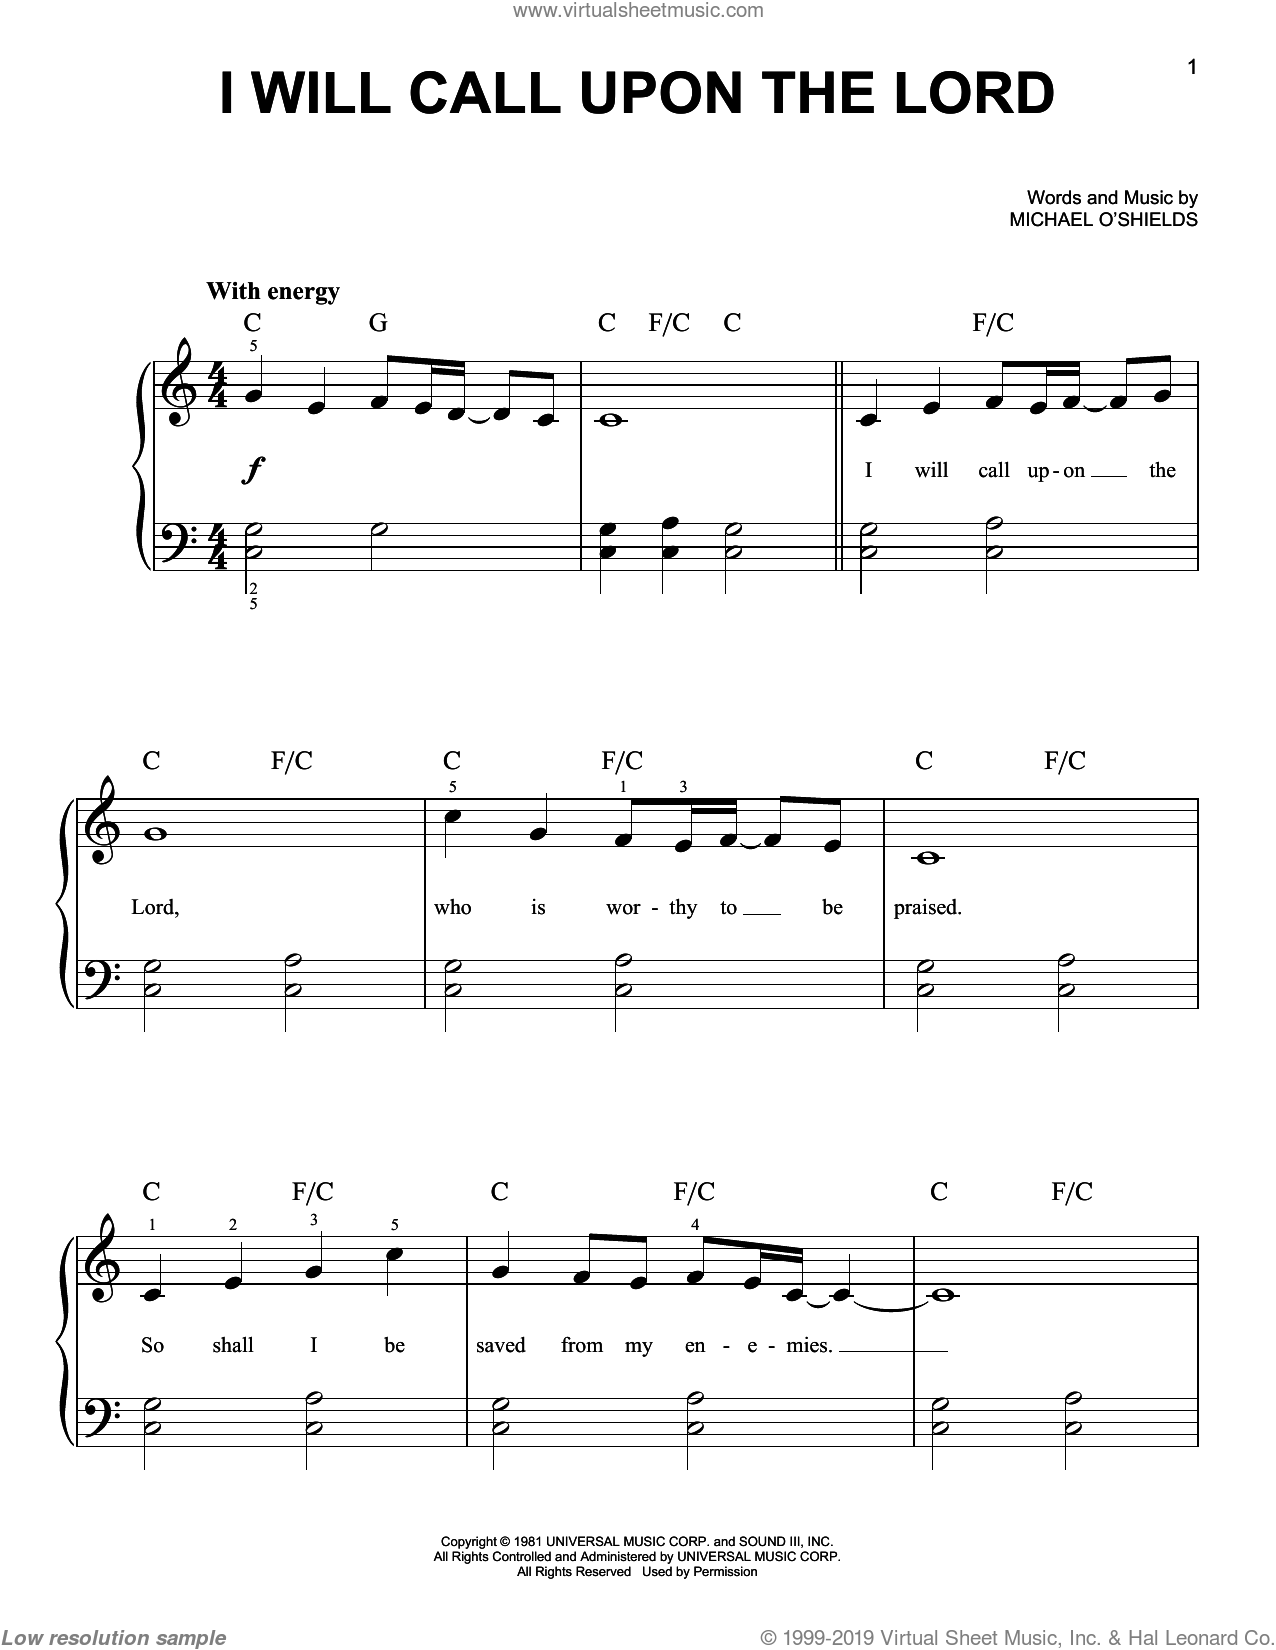 I Will Call Upon The Lord sheet music for piano solo (chords) by Michael O'Shields